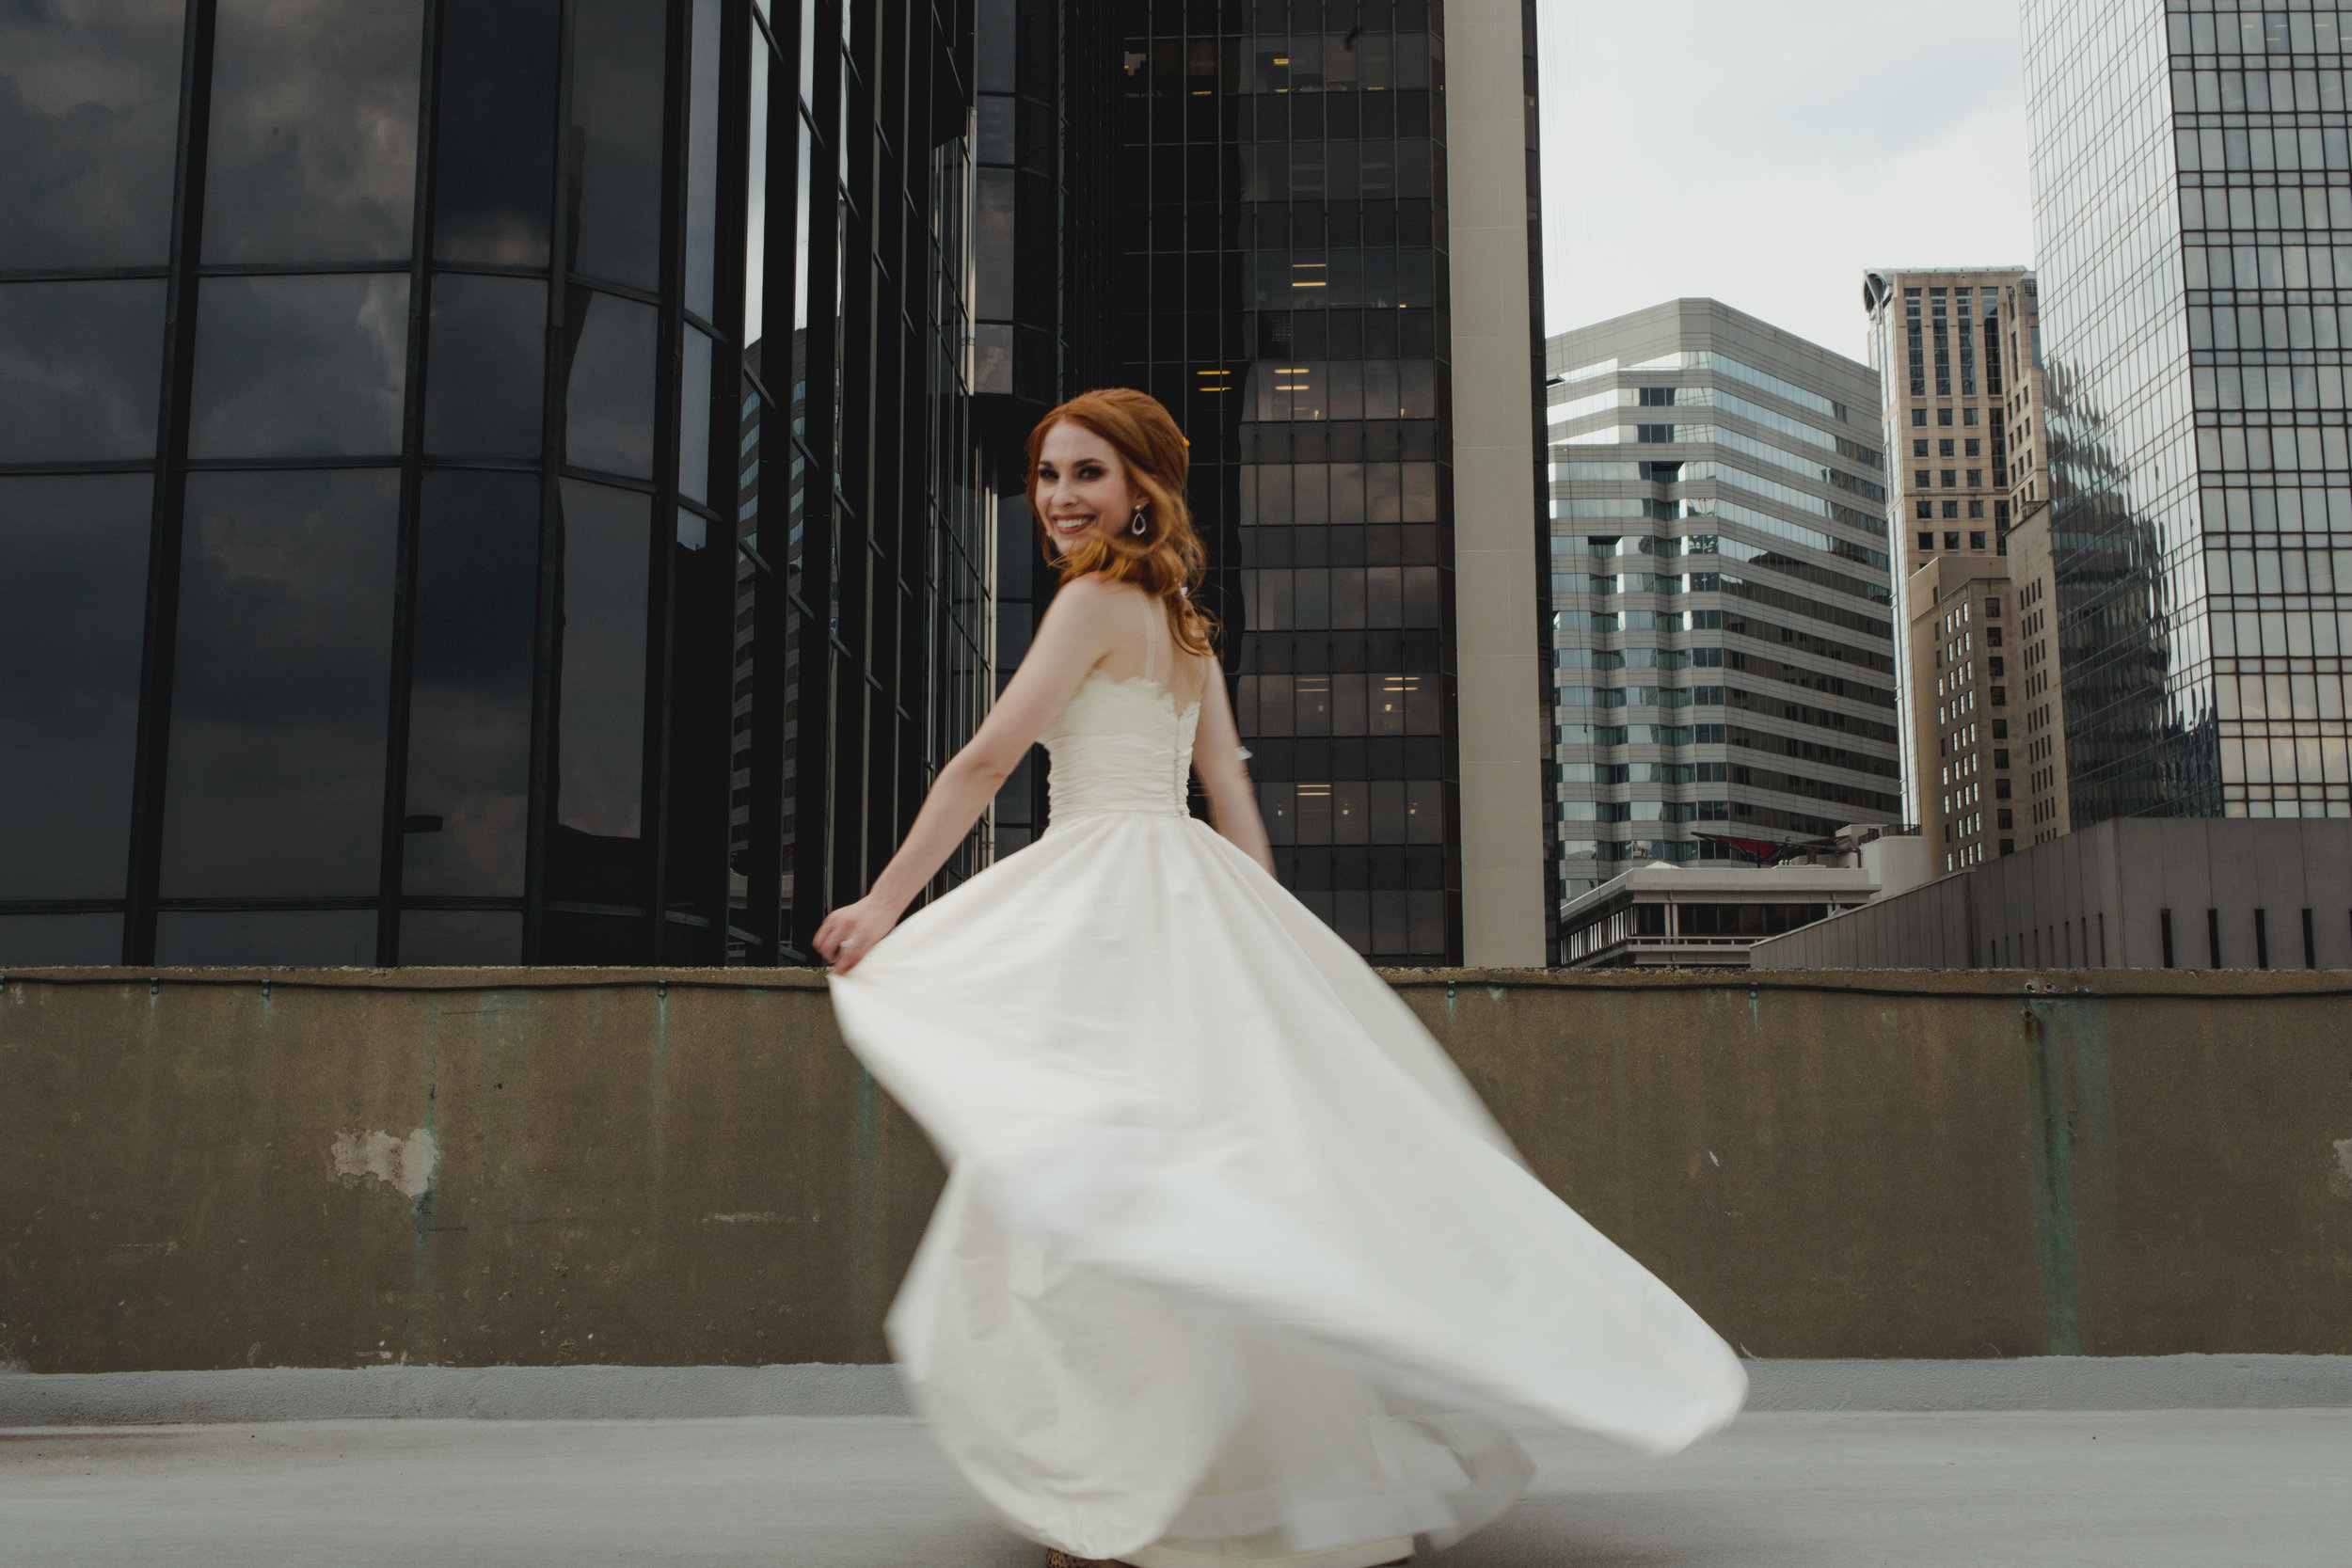 uptown charlotte bridal session, uptown charlotte engagement photos, charlotte photographer